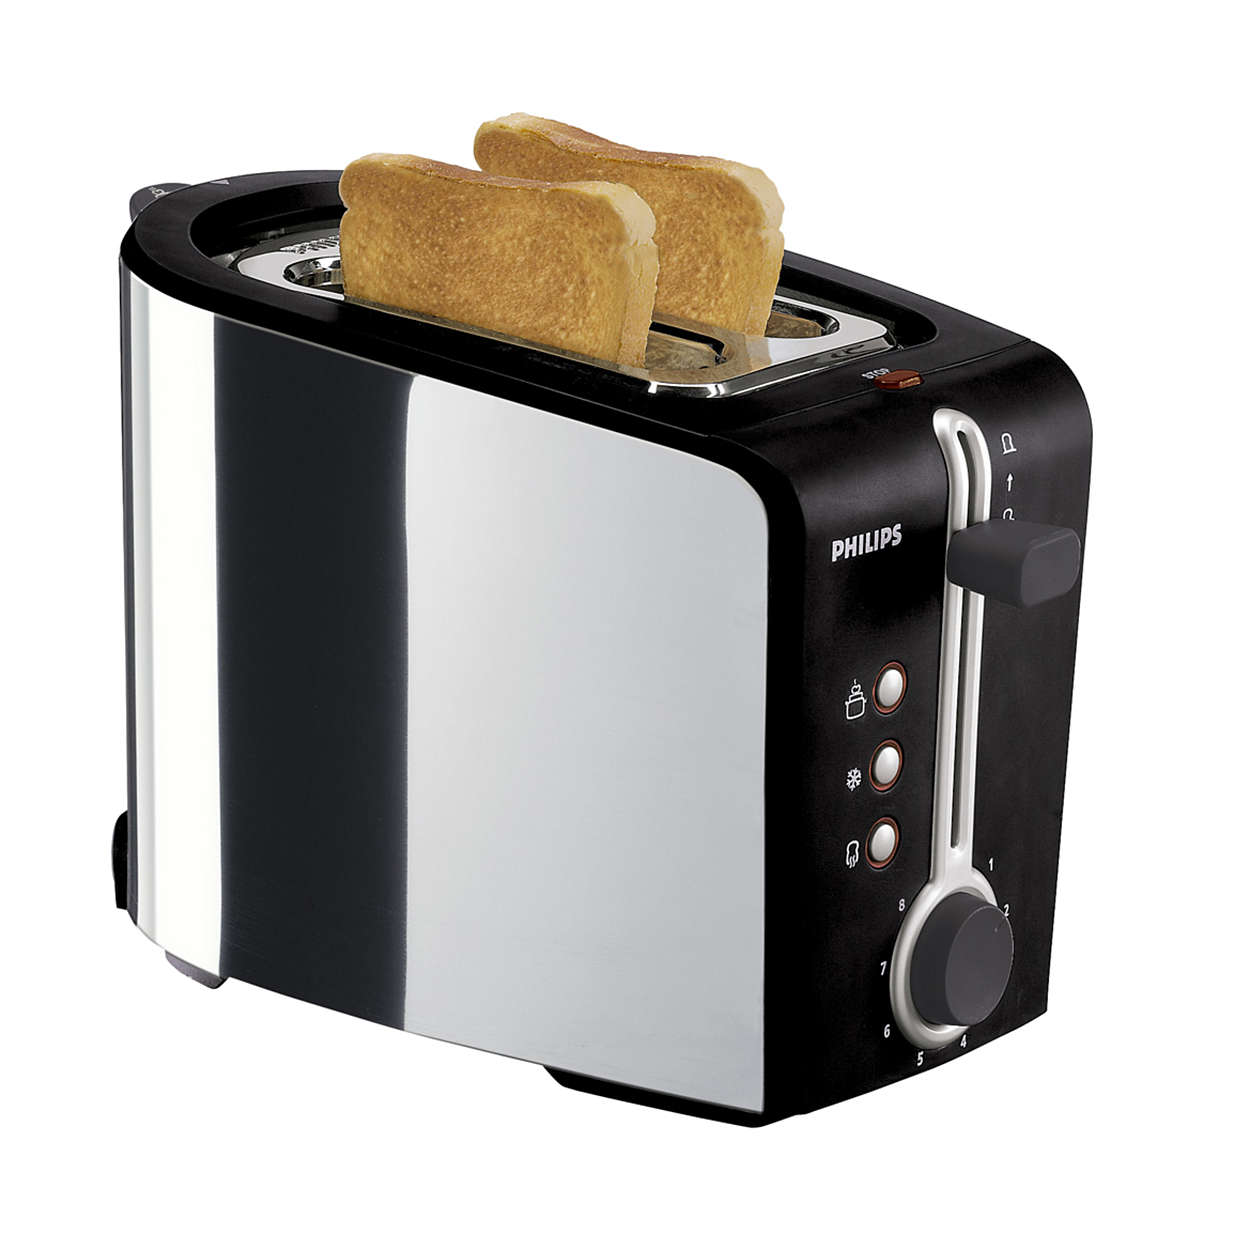 Enjoy great toast